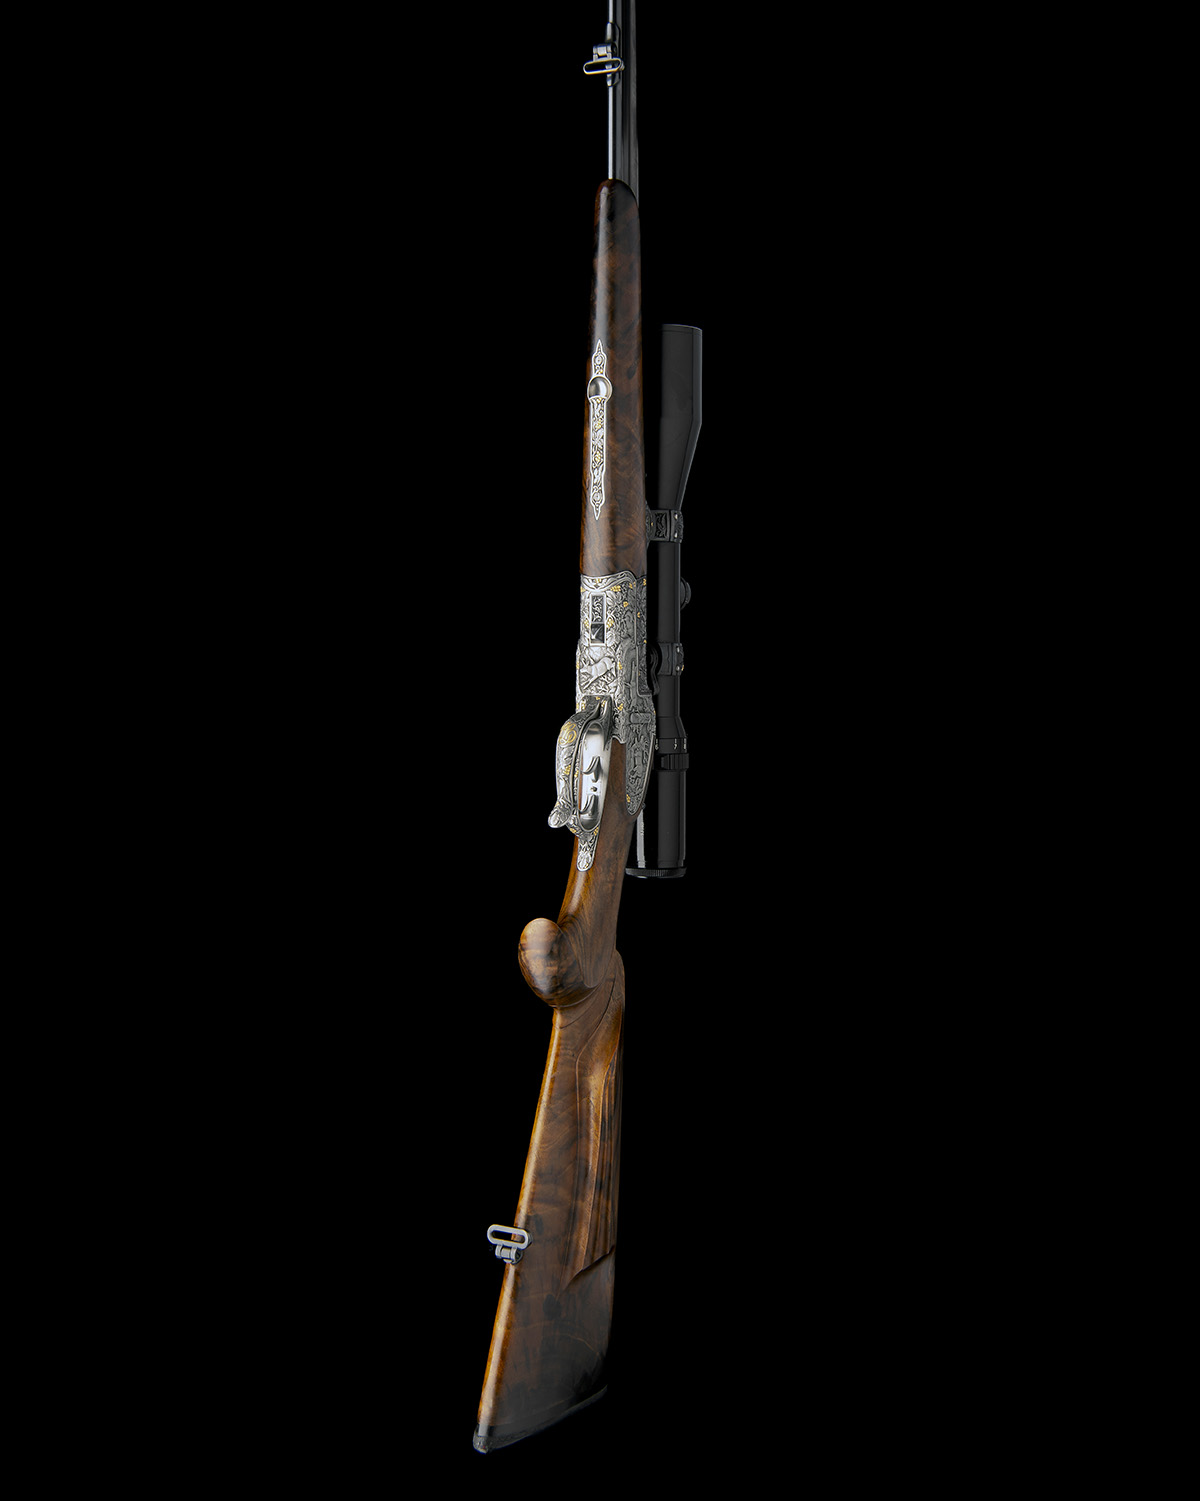 H. SCHEIRING AN 8X57RS / 5.6X50R MAG. JAEGER PATENT SIDEPLATED OVER AND UNDER PUSH-FORWARD - Image 4 of 12